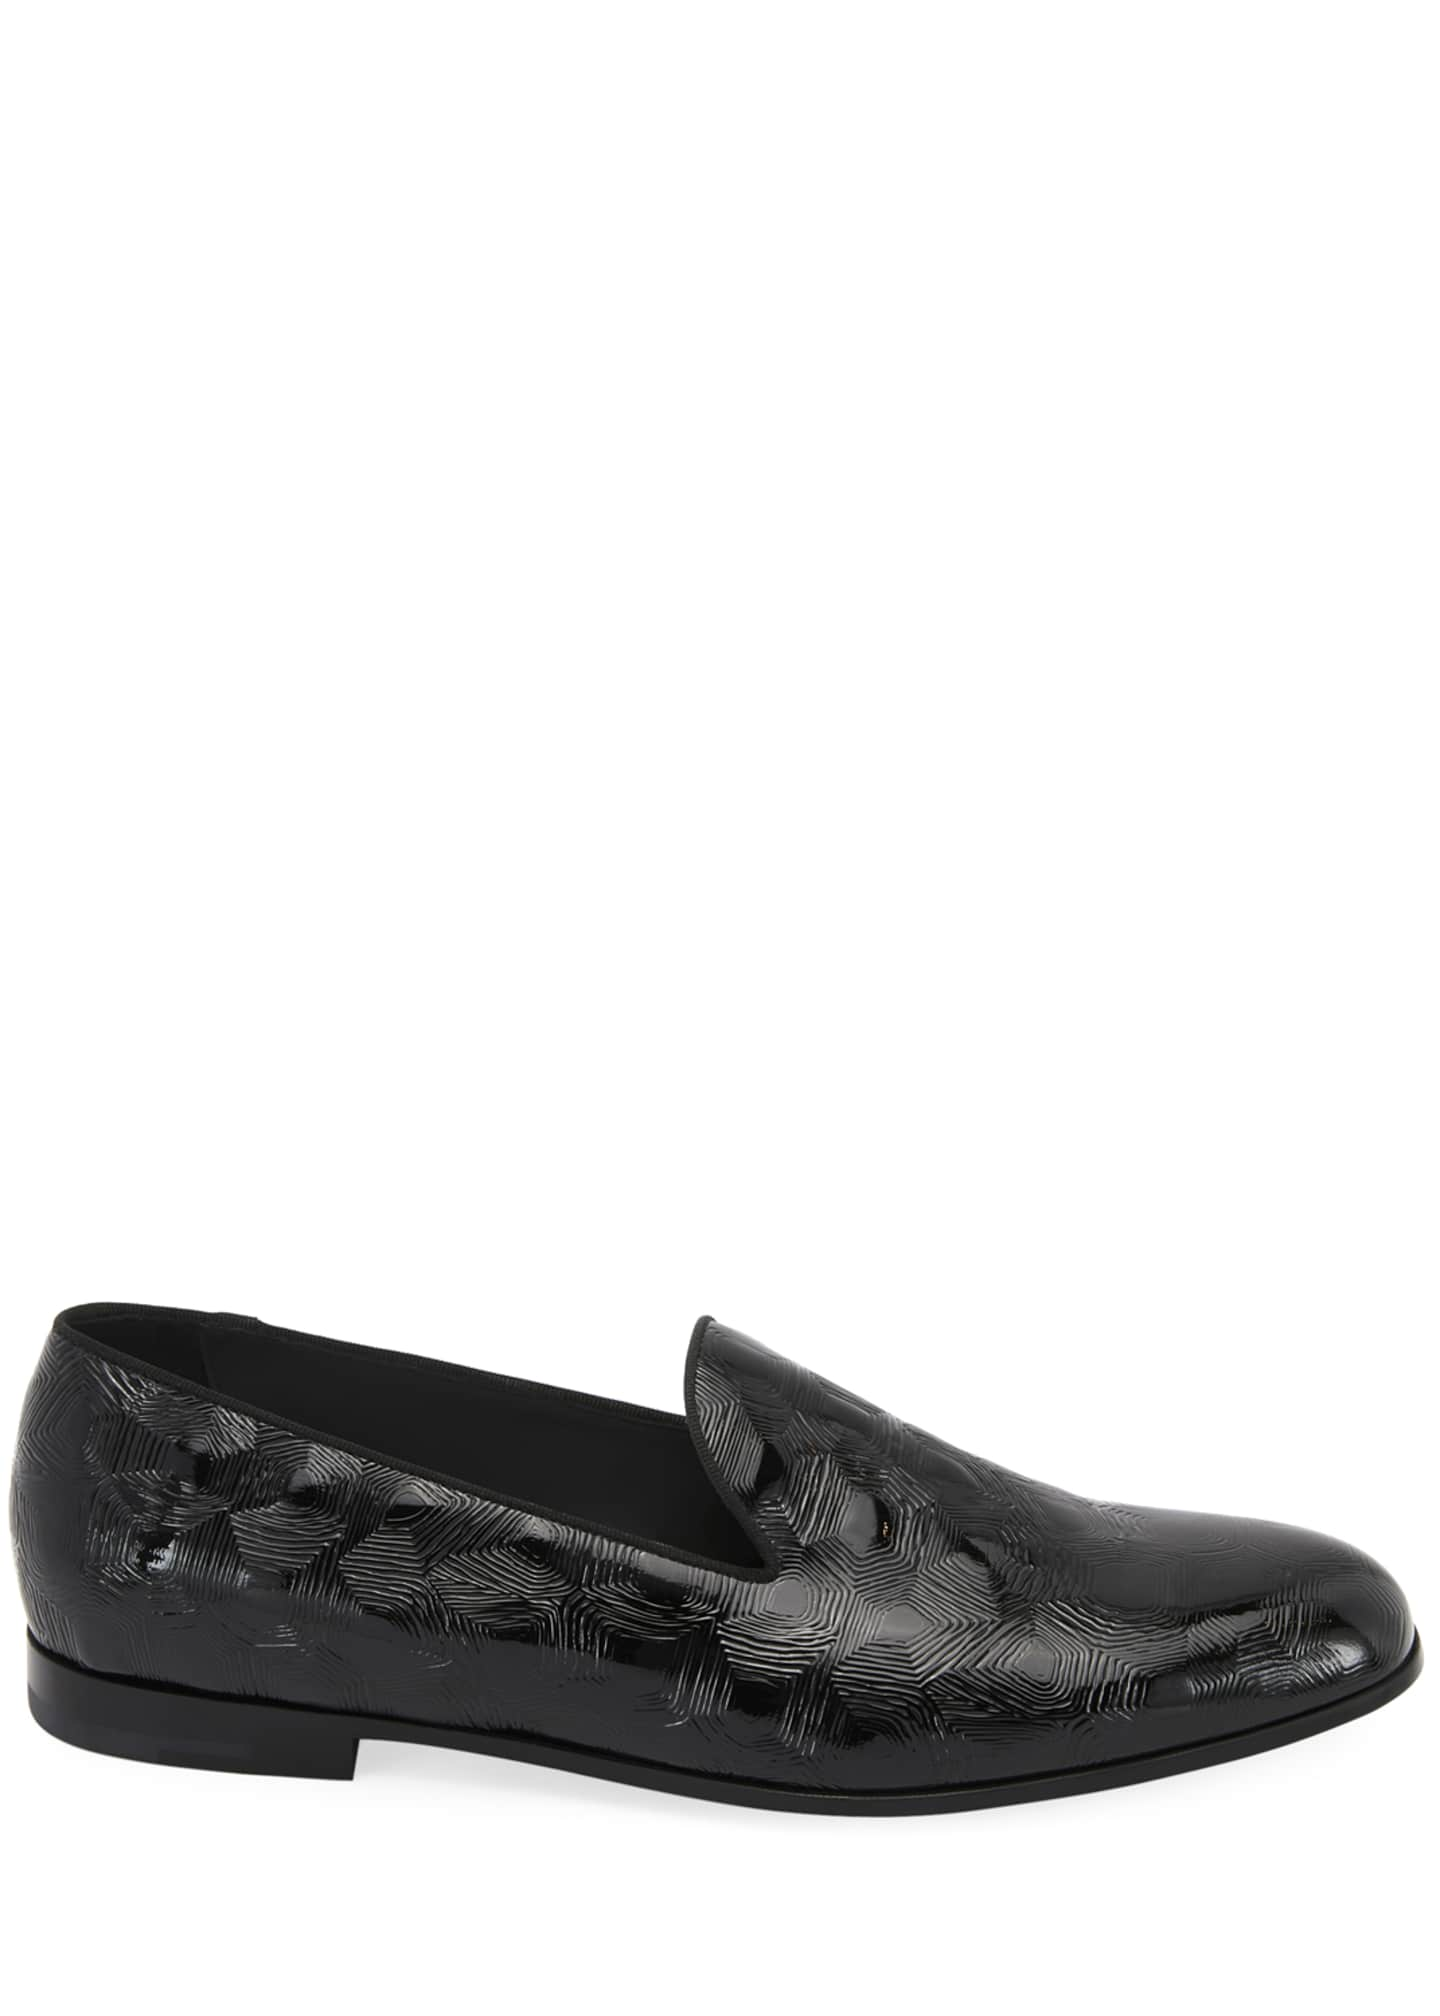 Image 2 of 3: Textured Patent Leather Slip-On Loafer